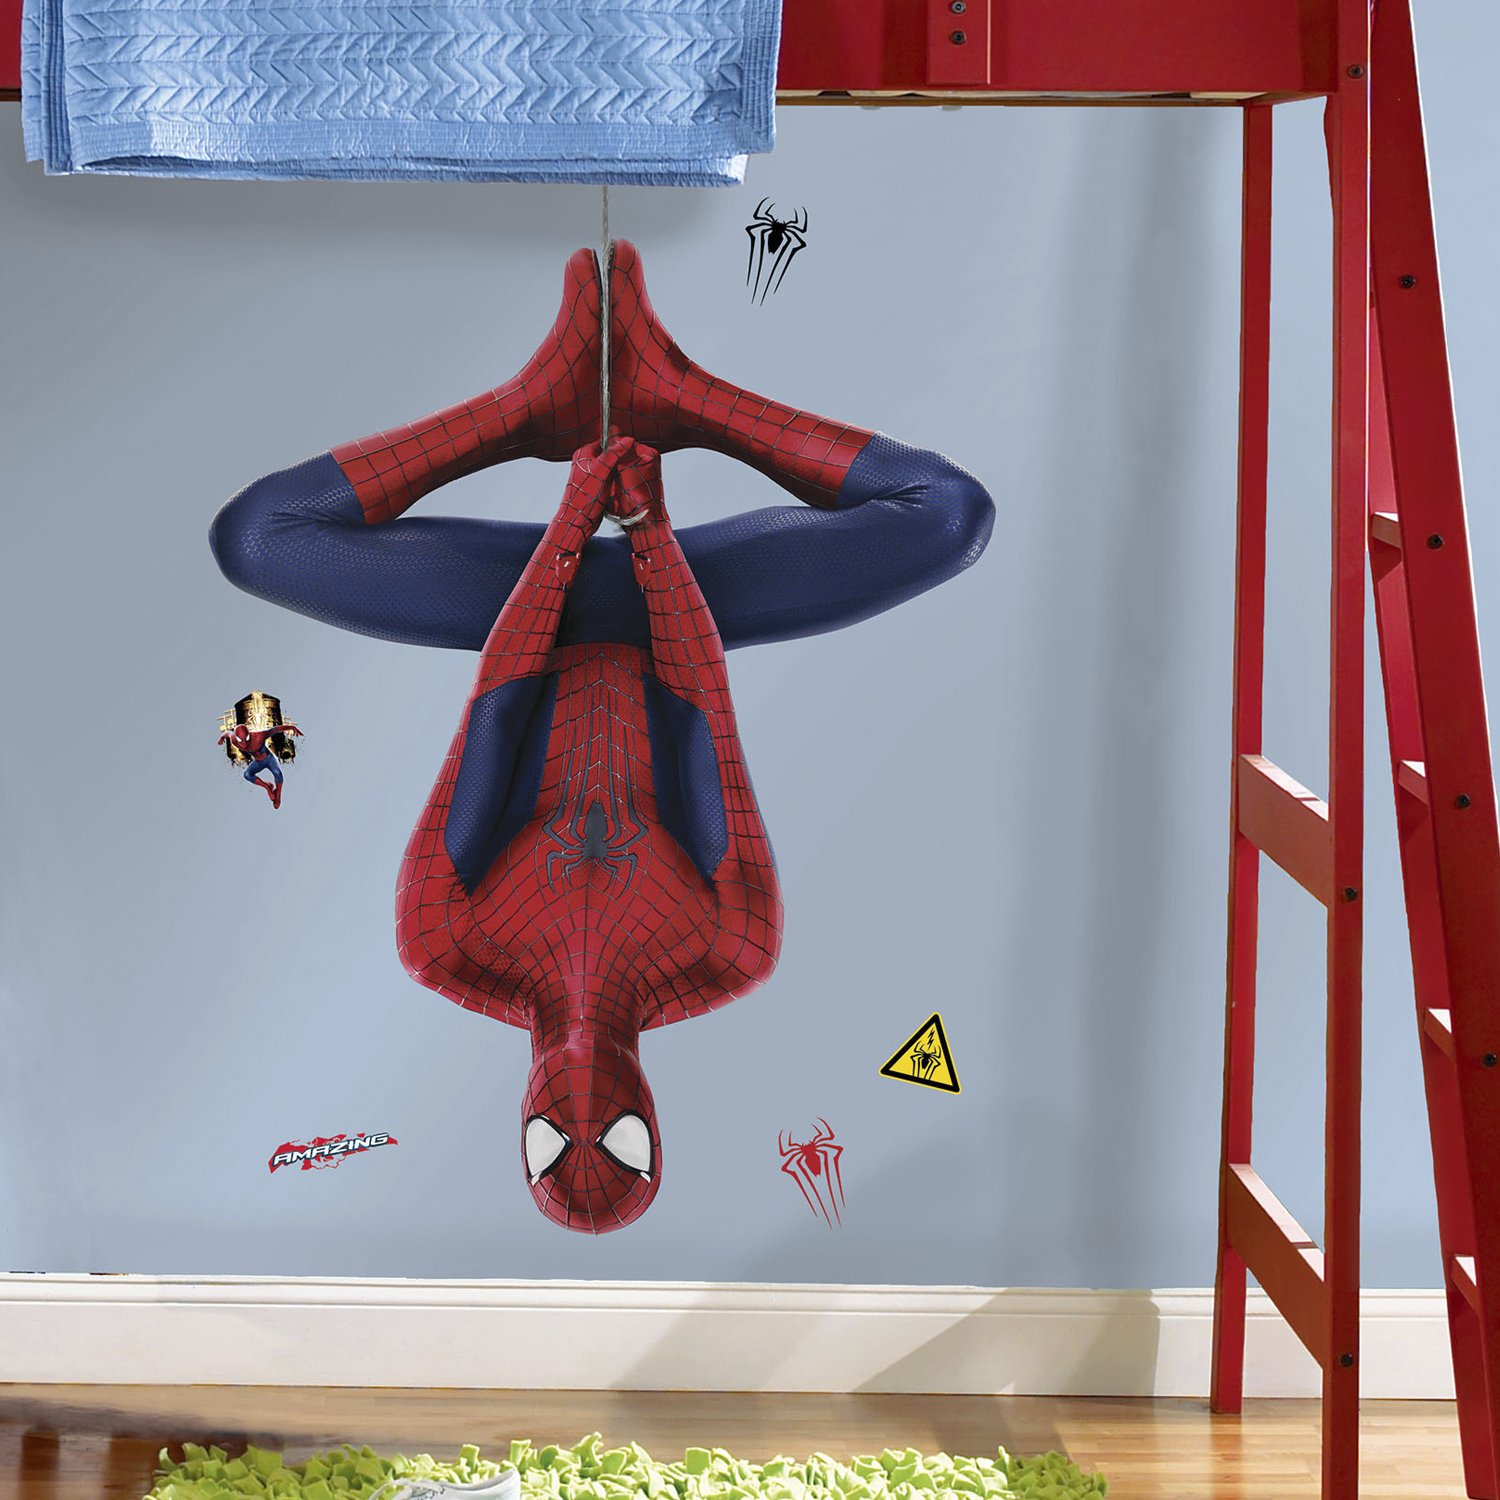 He Amazing Spider Man 2 Web Slinging Peel And Stick Giant Wall Decal